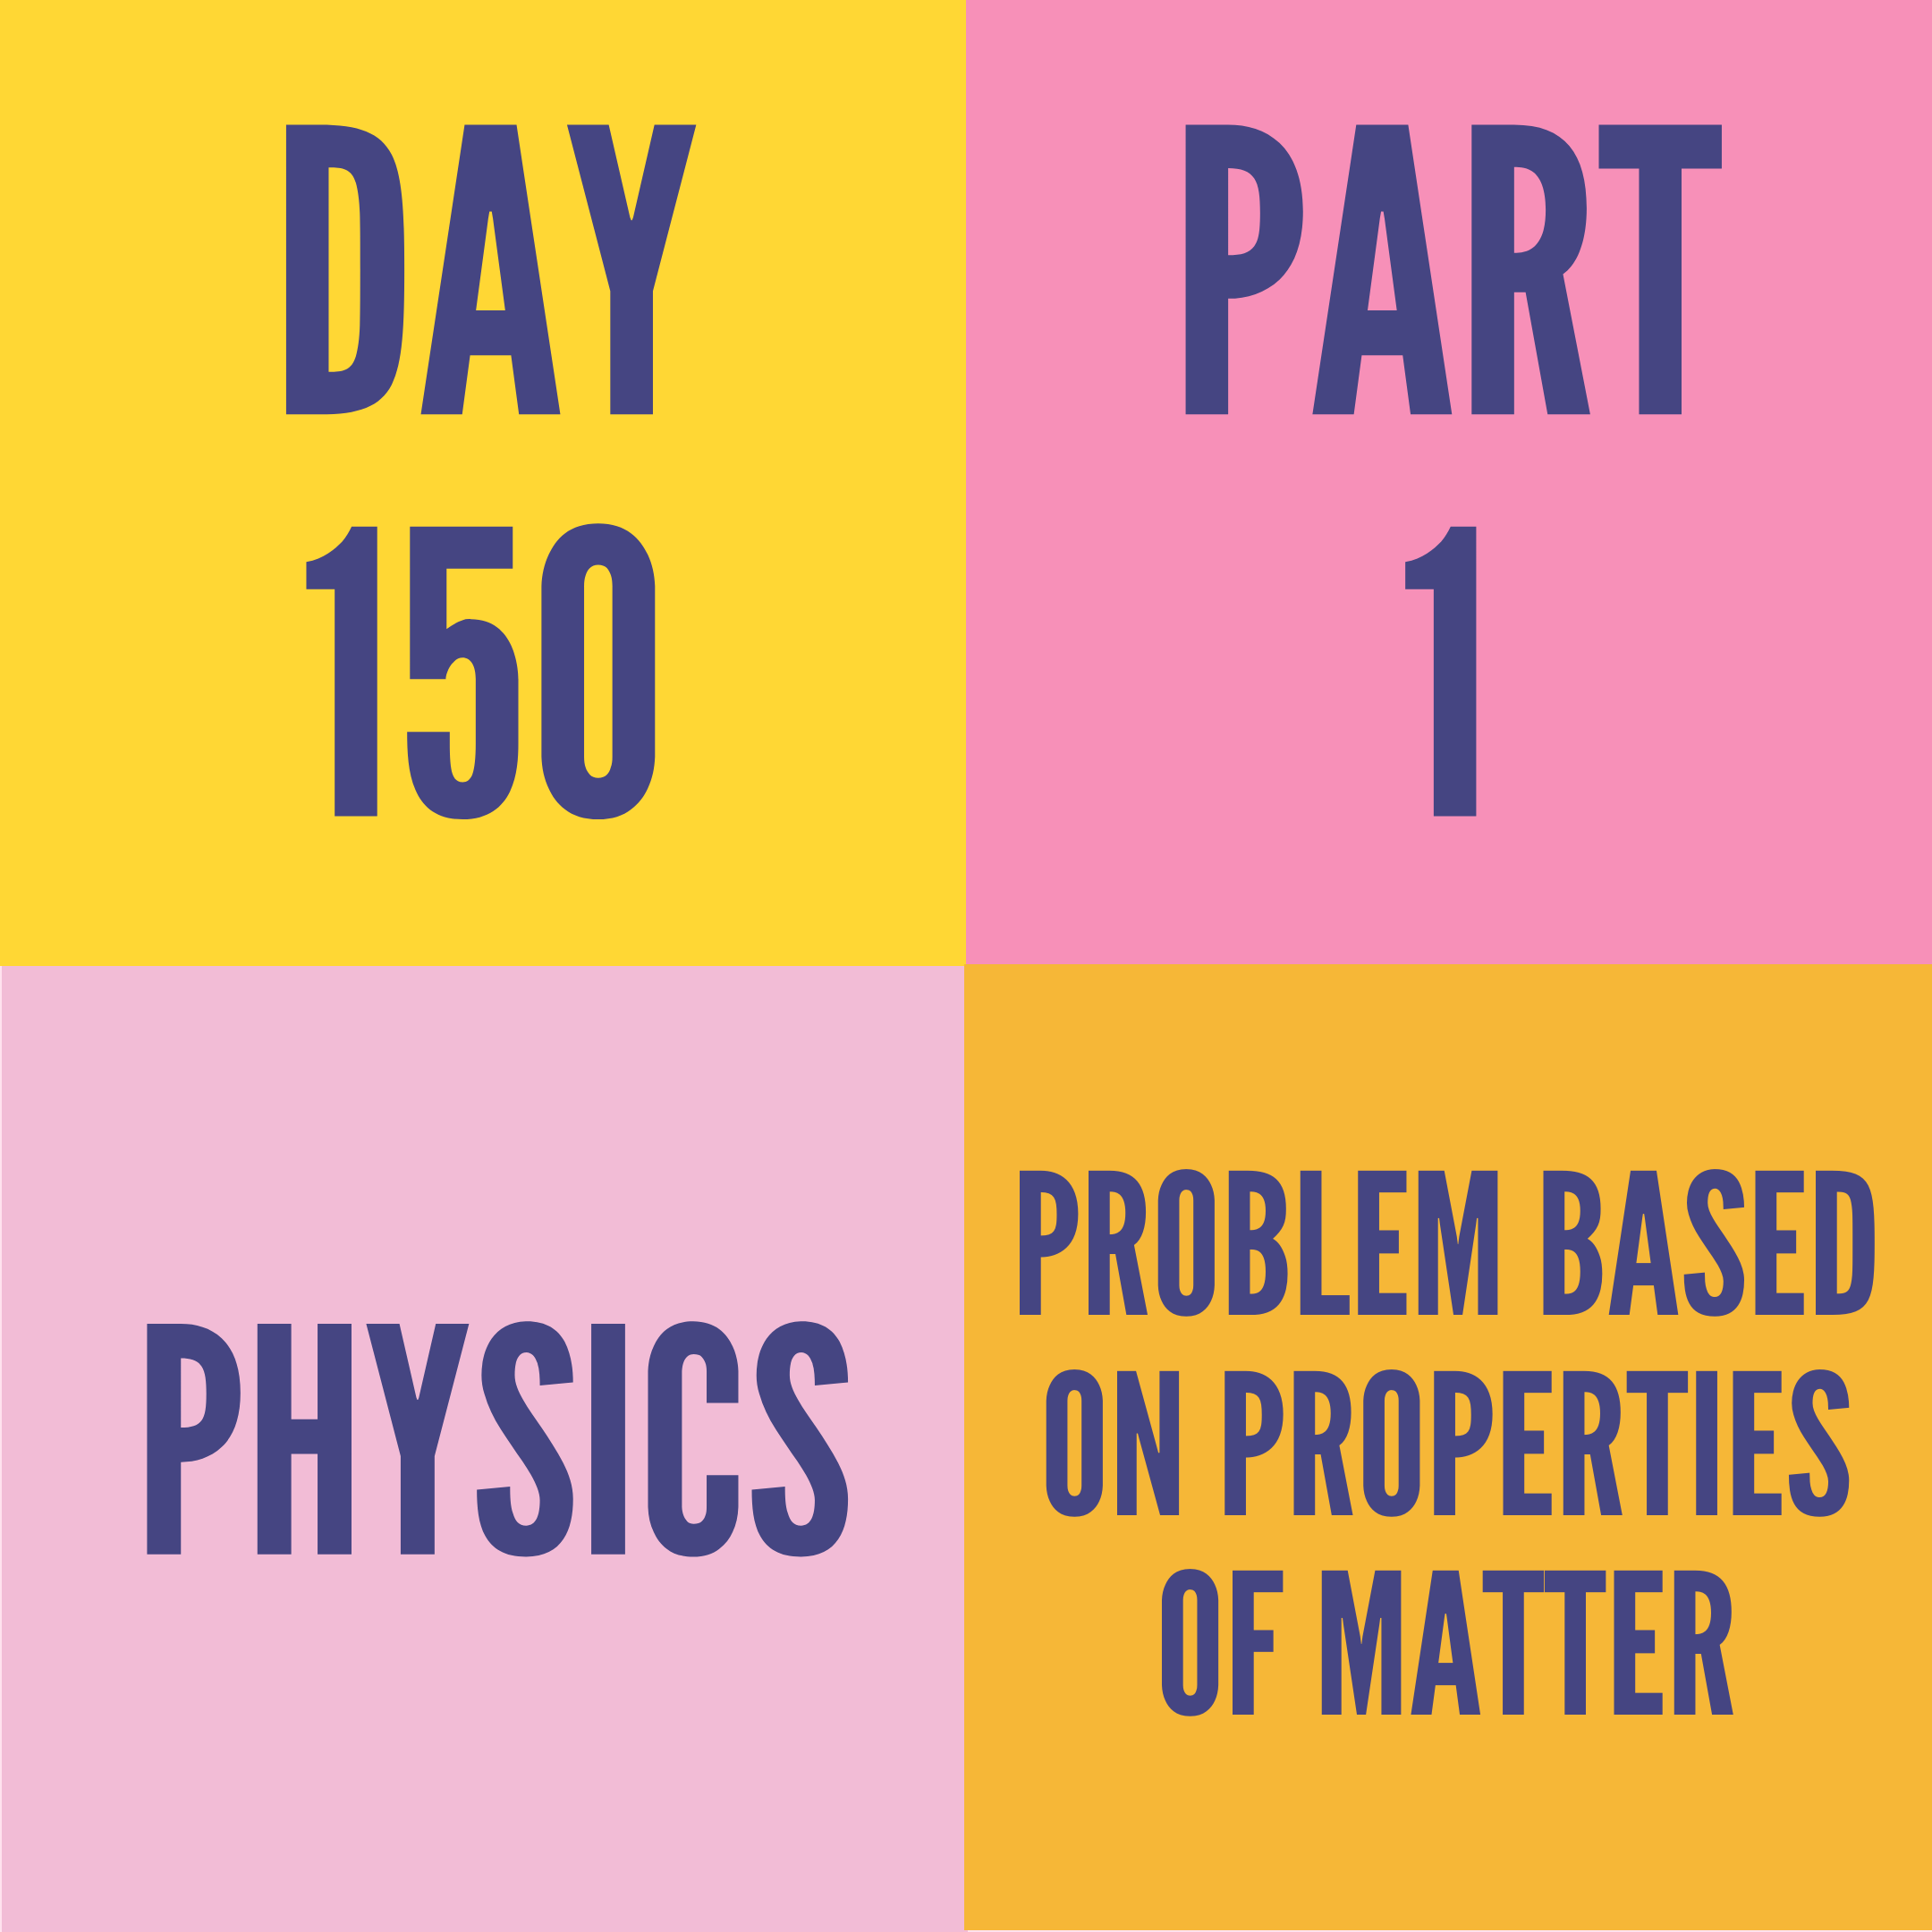 DAY-150 PART-1 PROBLEM BASED ON PROPERTIES OF MATTER